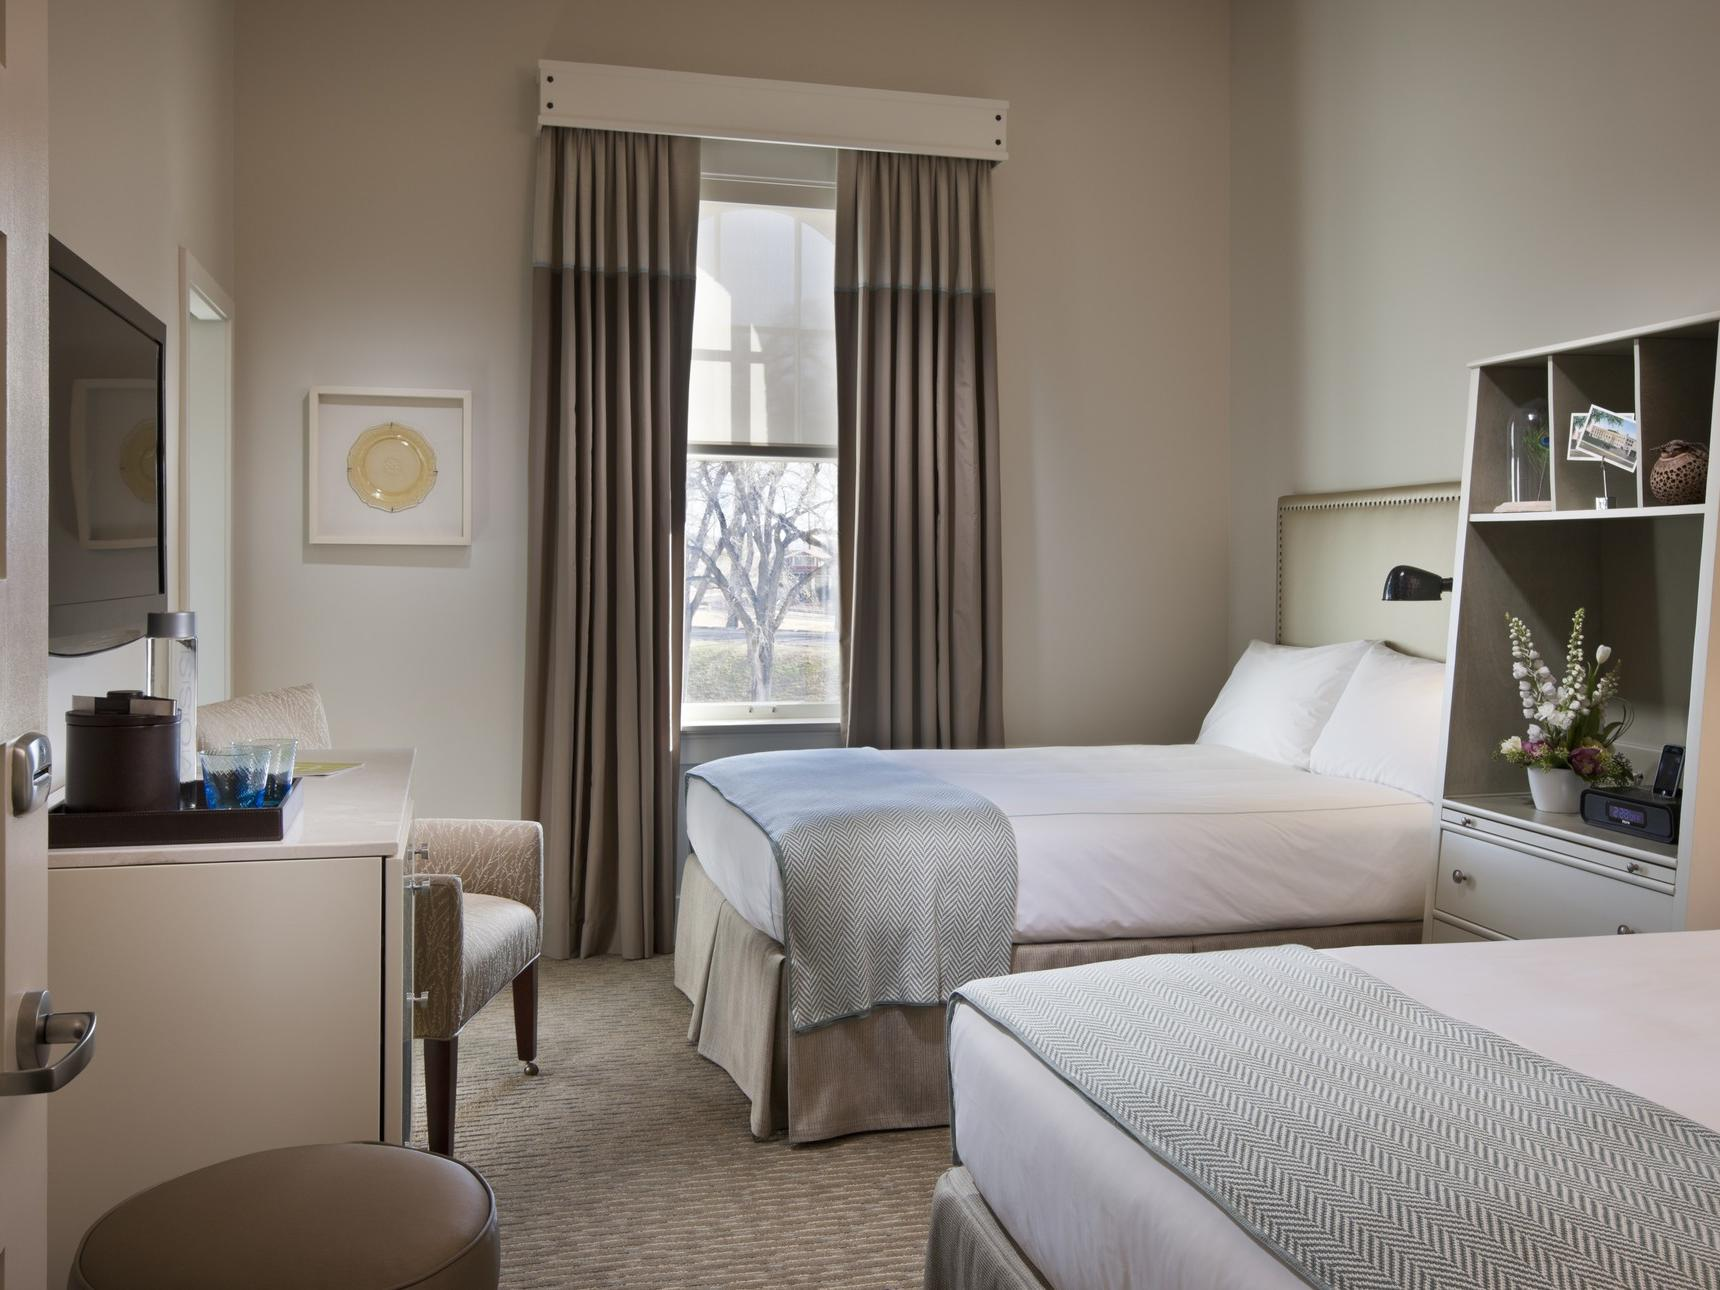 Two beds in hotel room